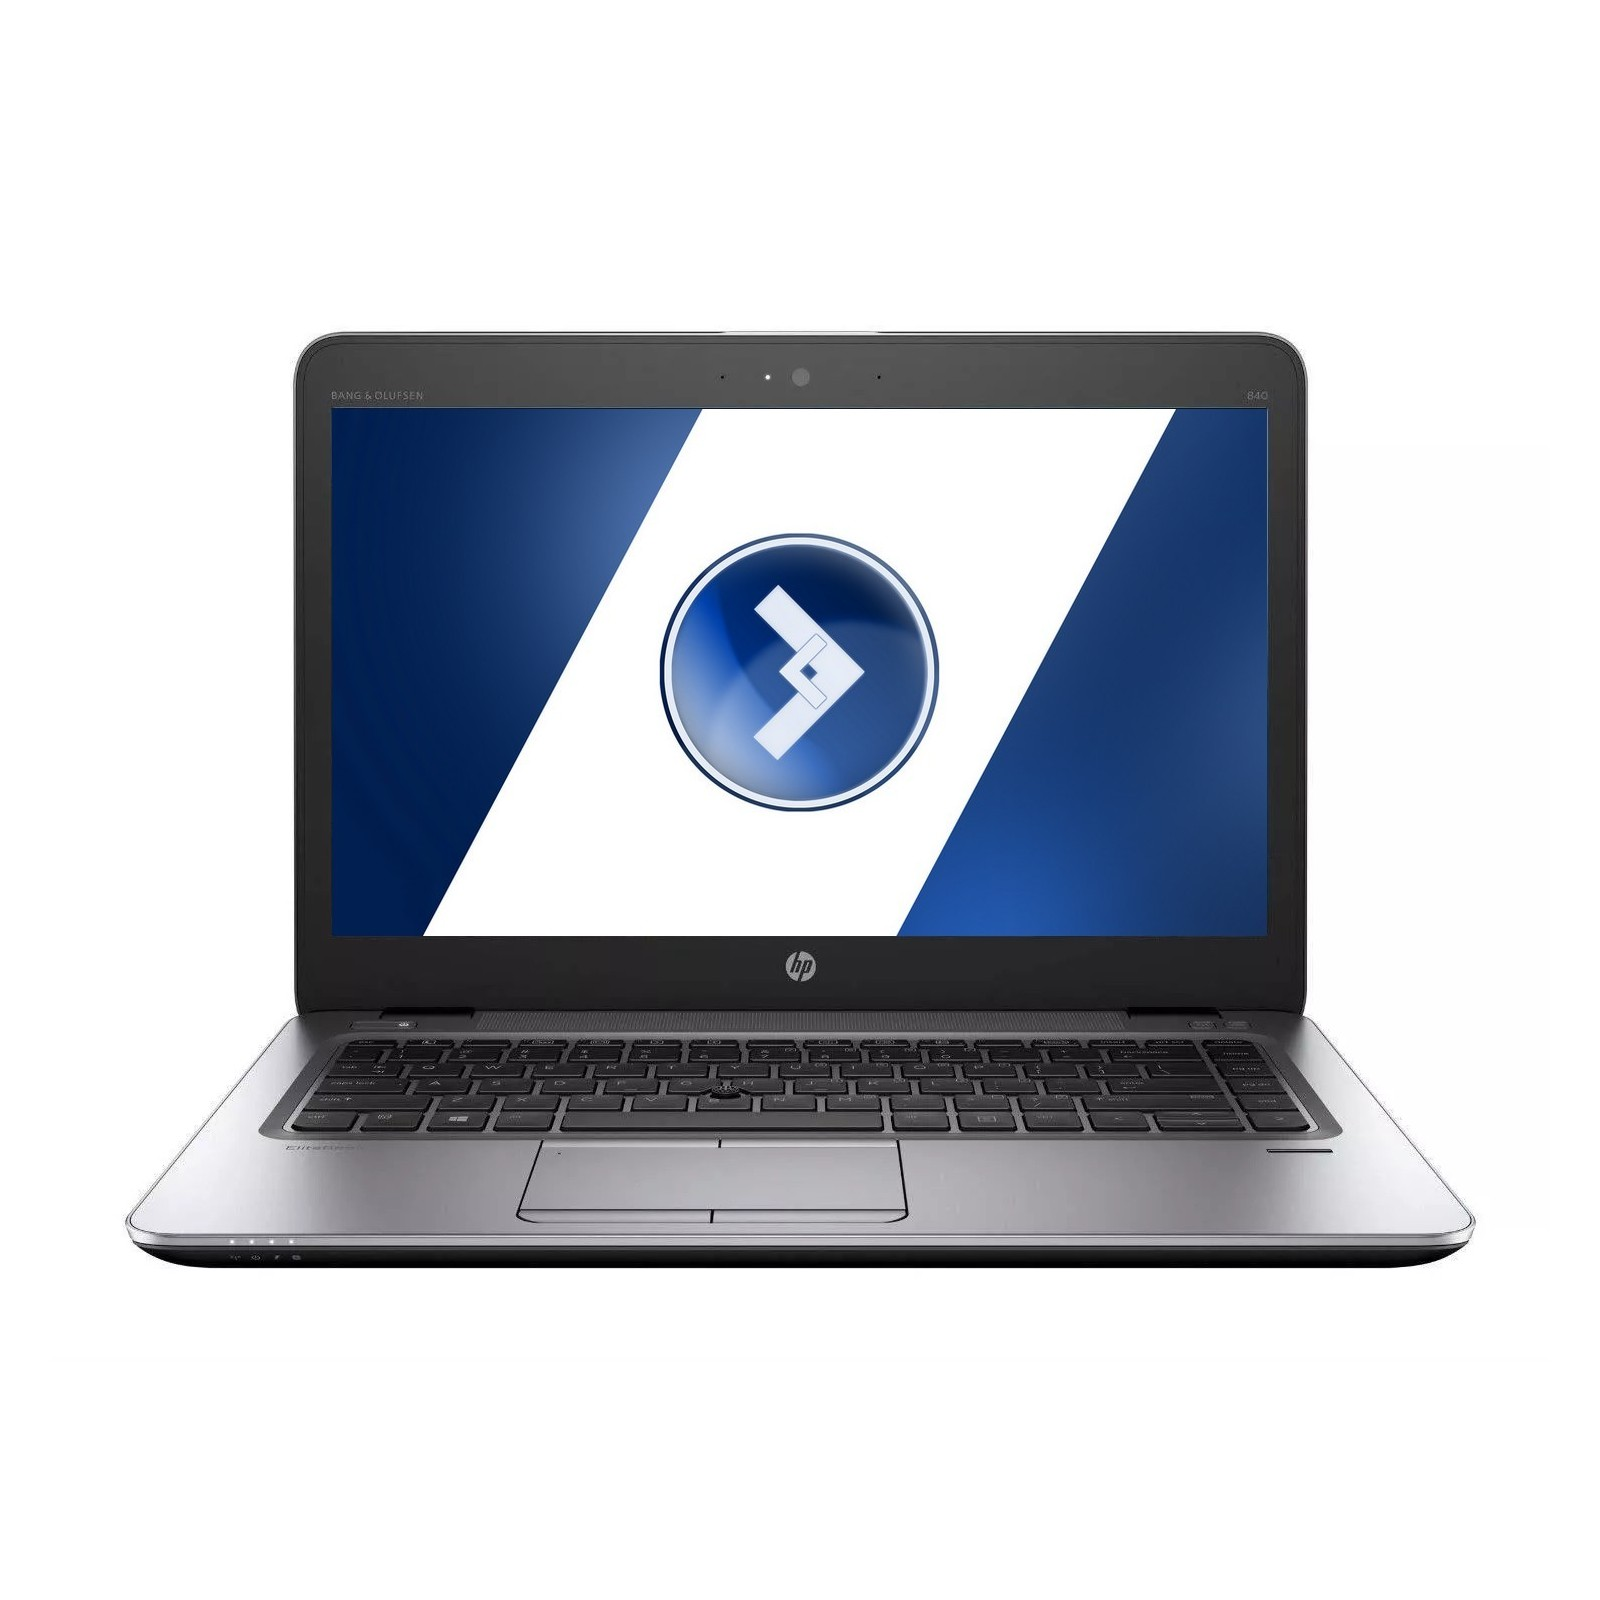 HP 840 G3 i5/8GB RAM/ 240GB SSD/Windows 10